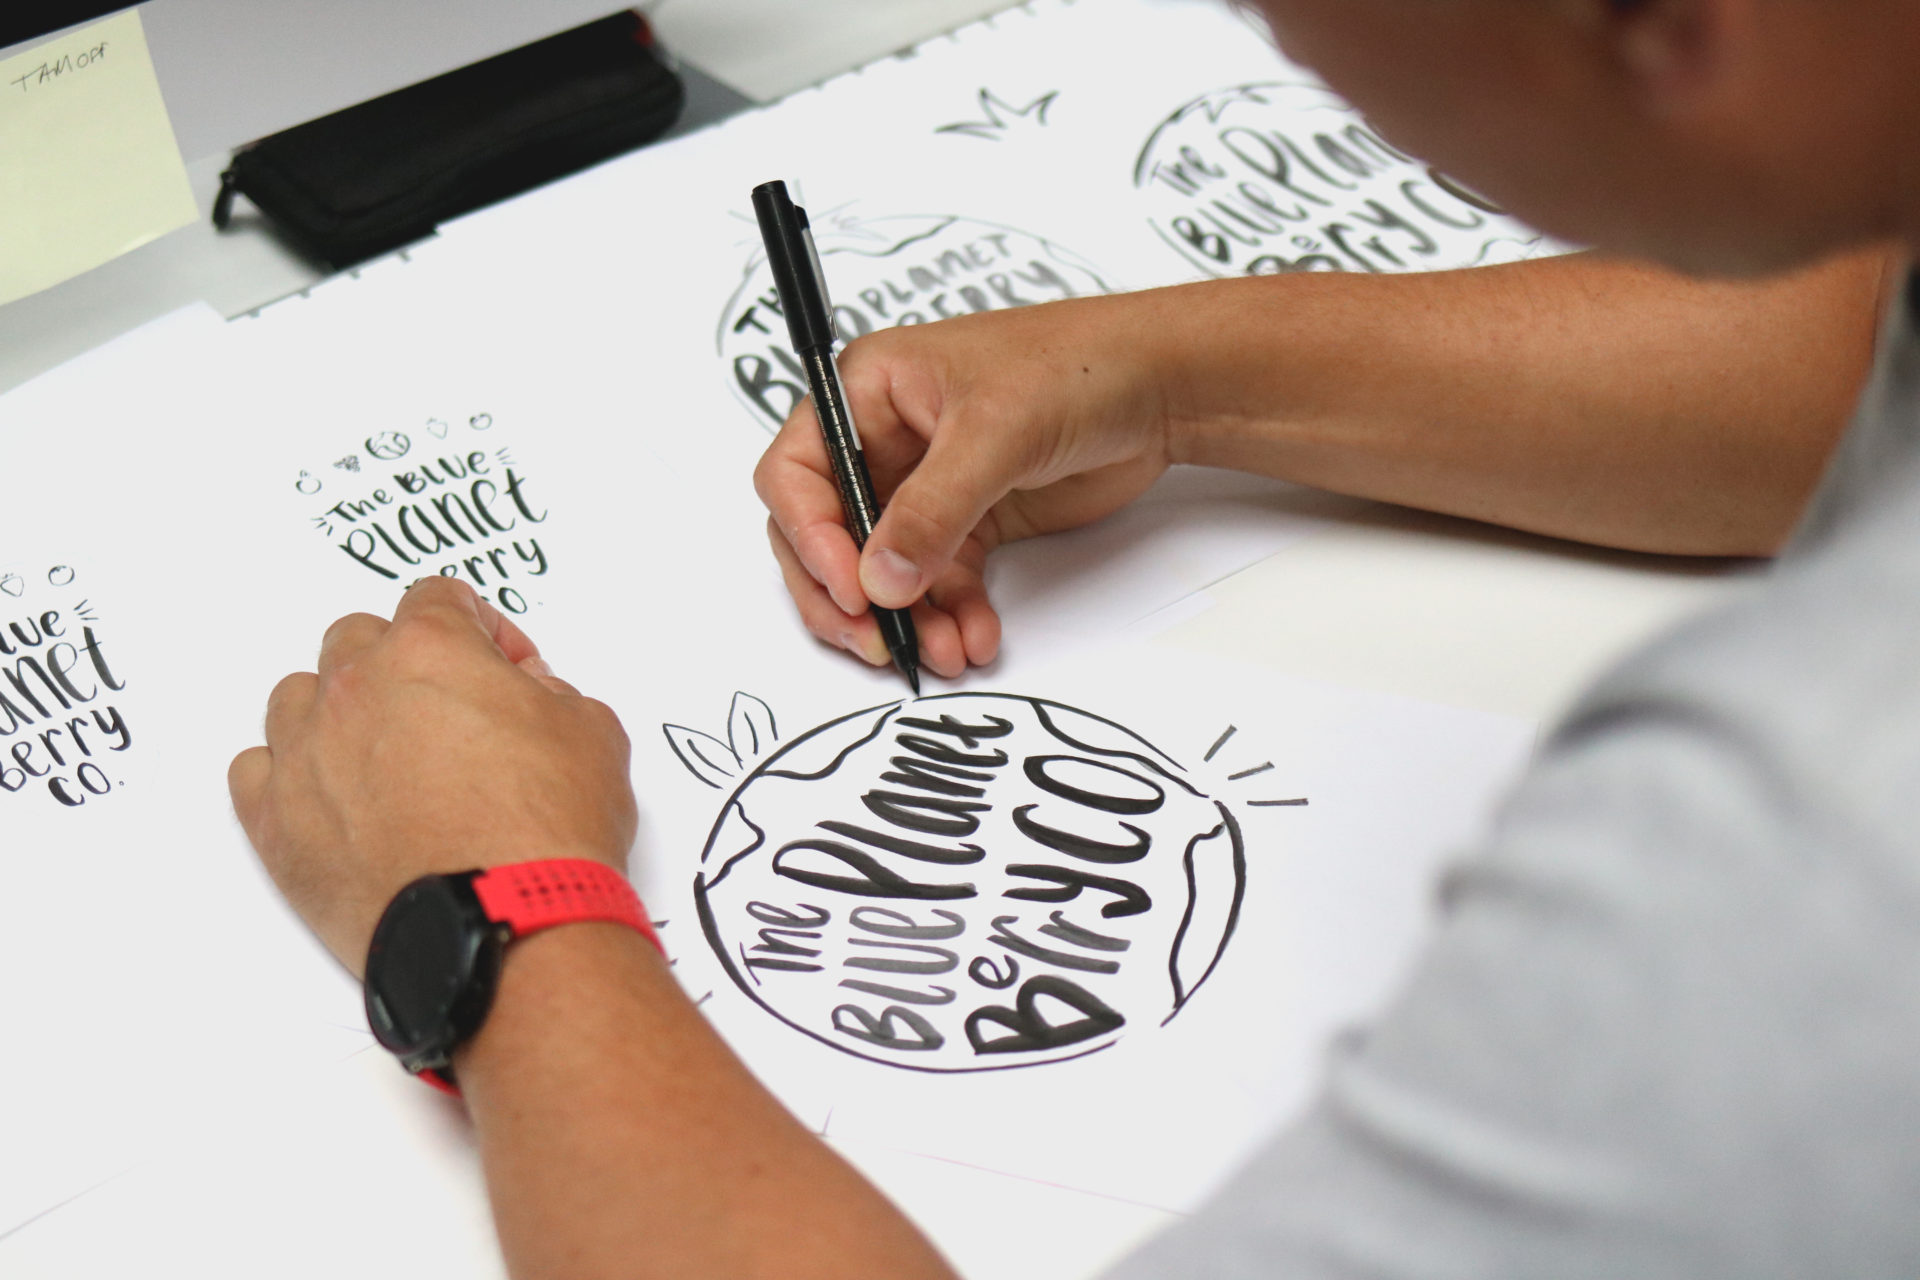 person drawing blue planet berry co logo on paper